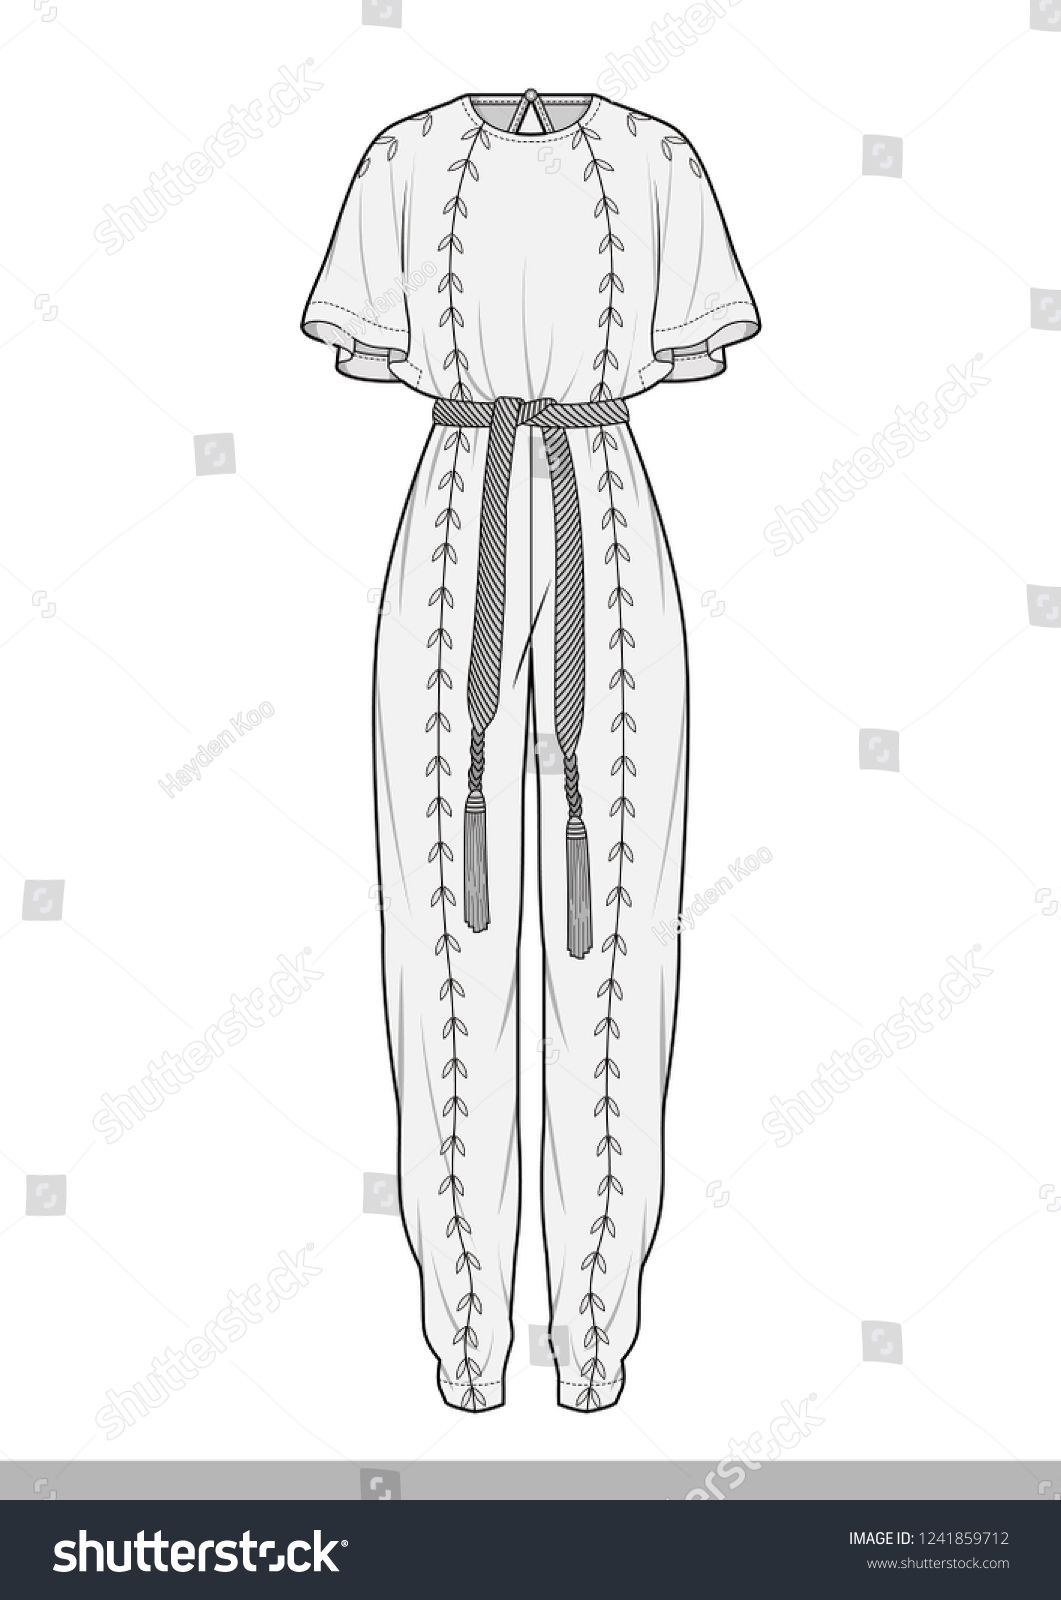 #Fashion drawing Jump Suit Fashion Flat Technical Drawing Stock Vector (Royalty Free) 1241859712